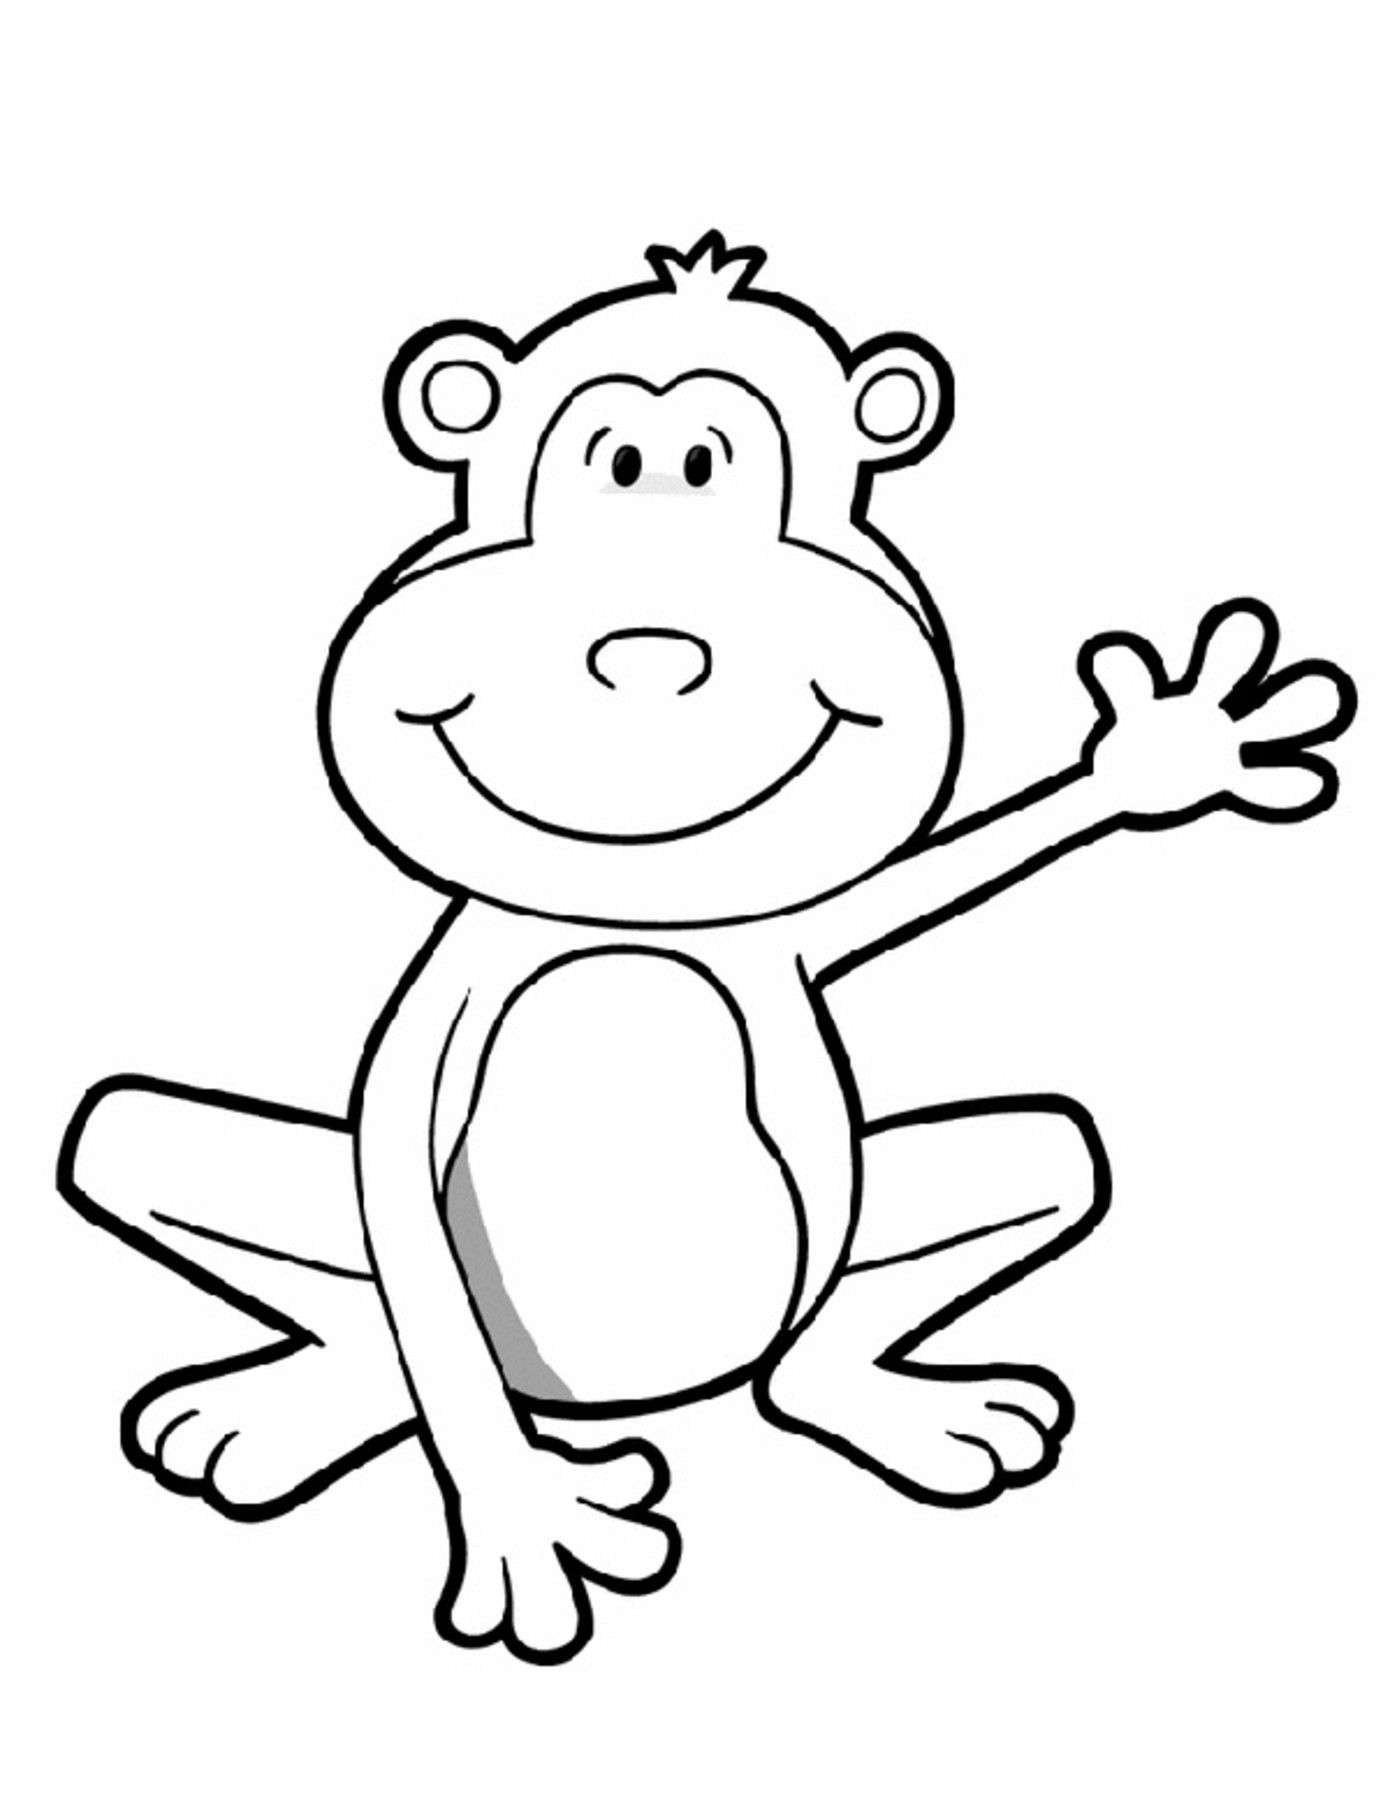 animal coloring pages for kids leopard frog frogs